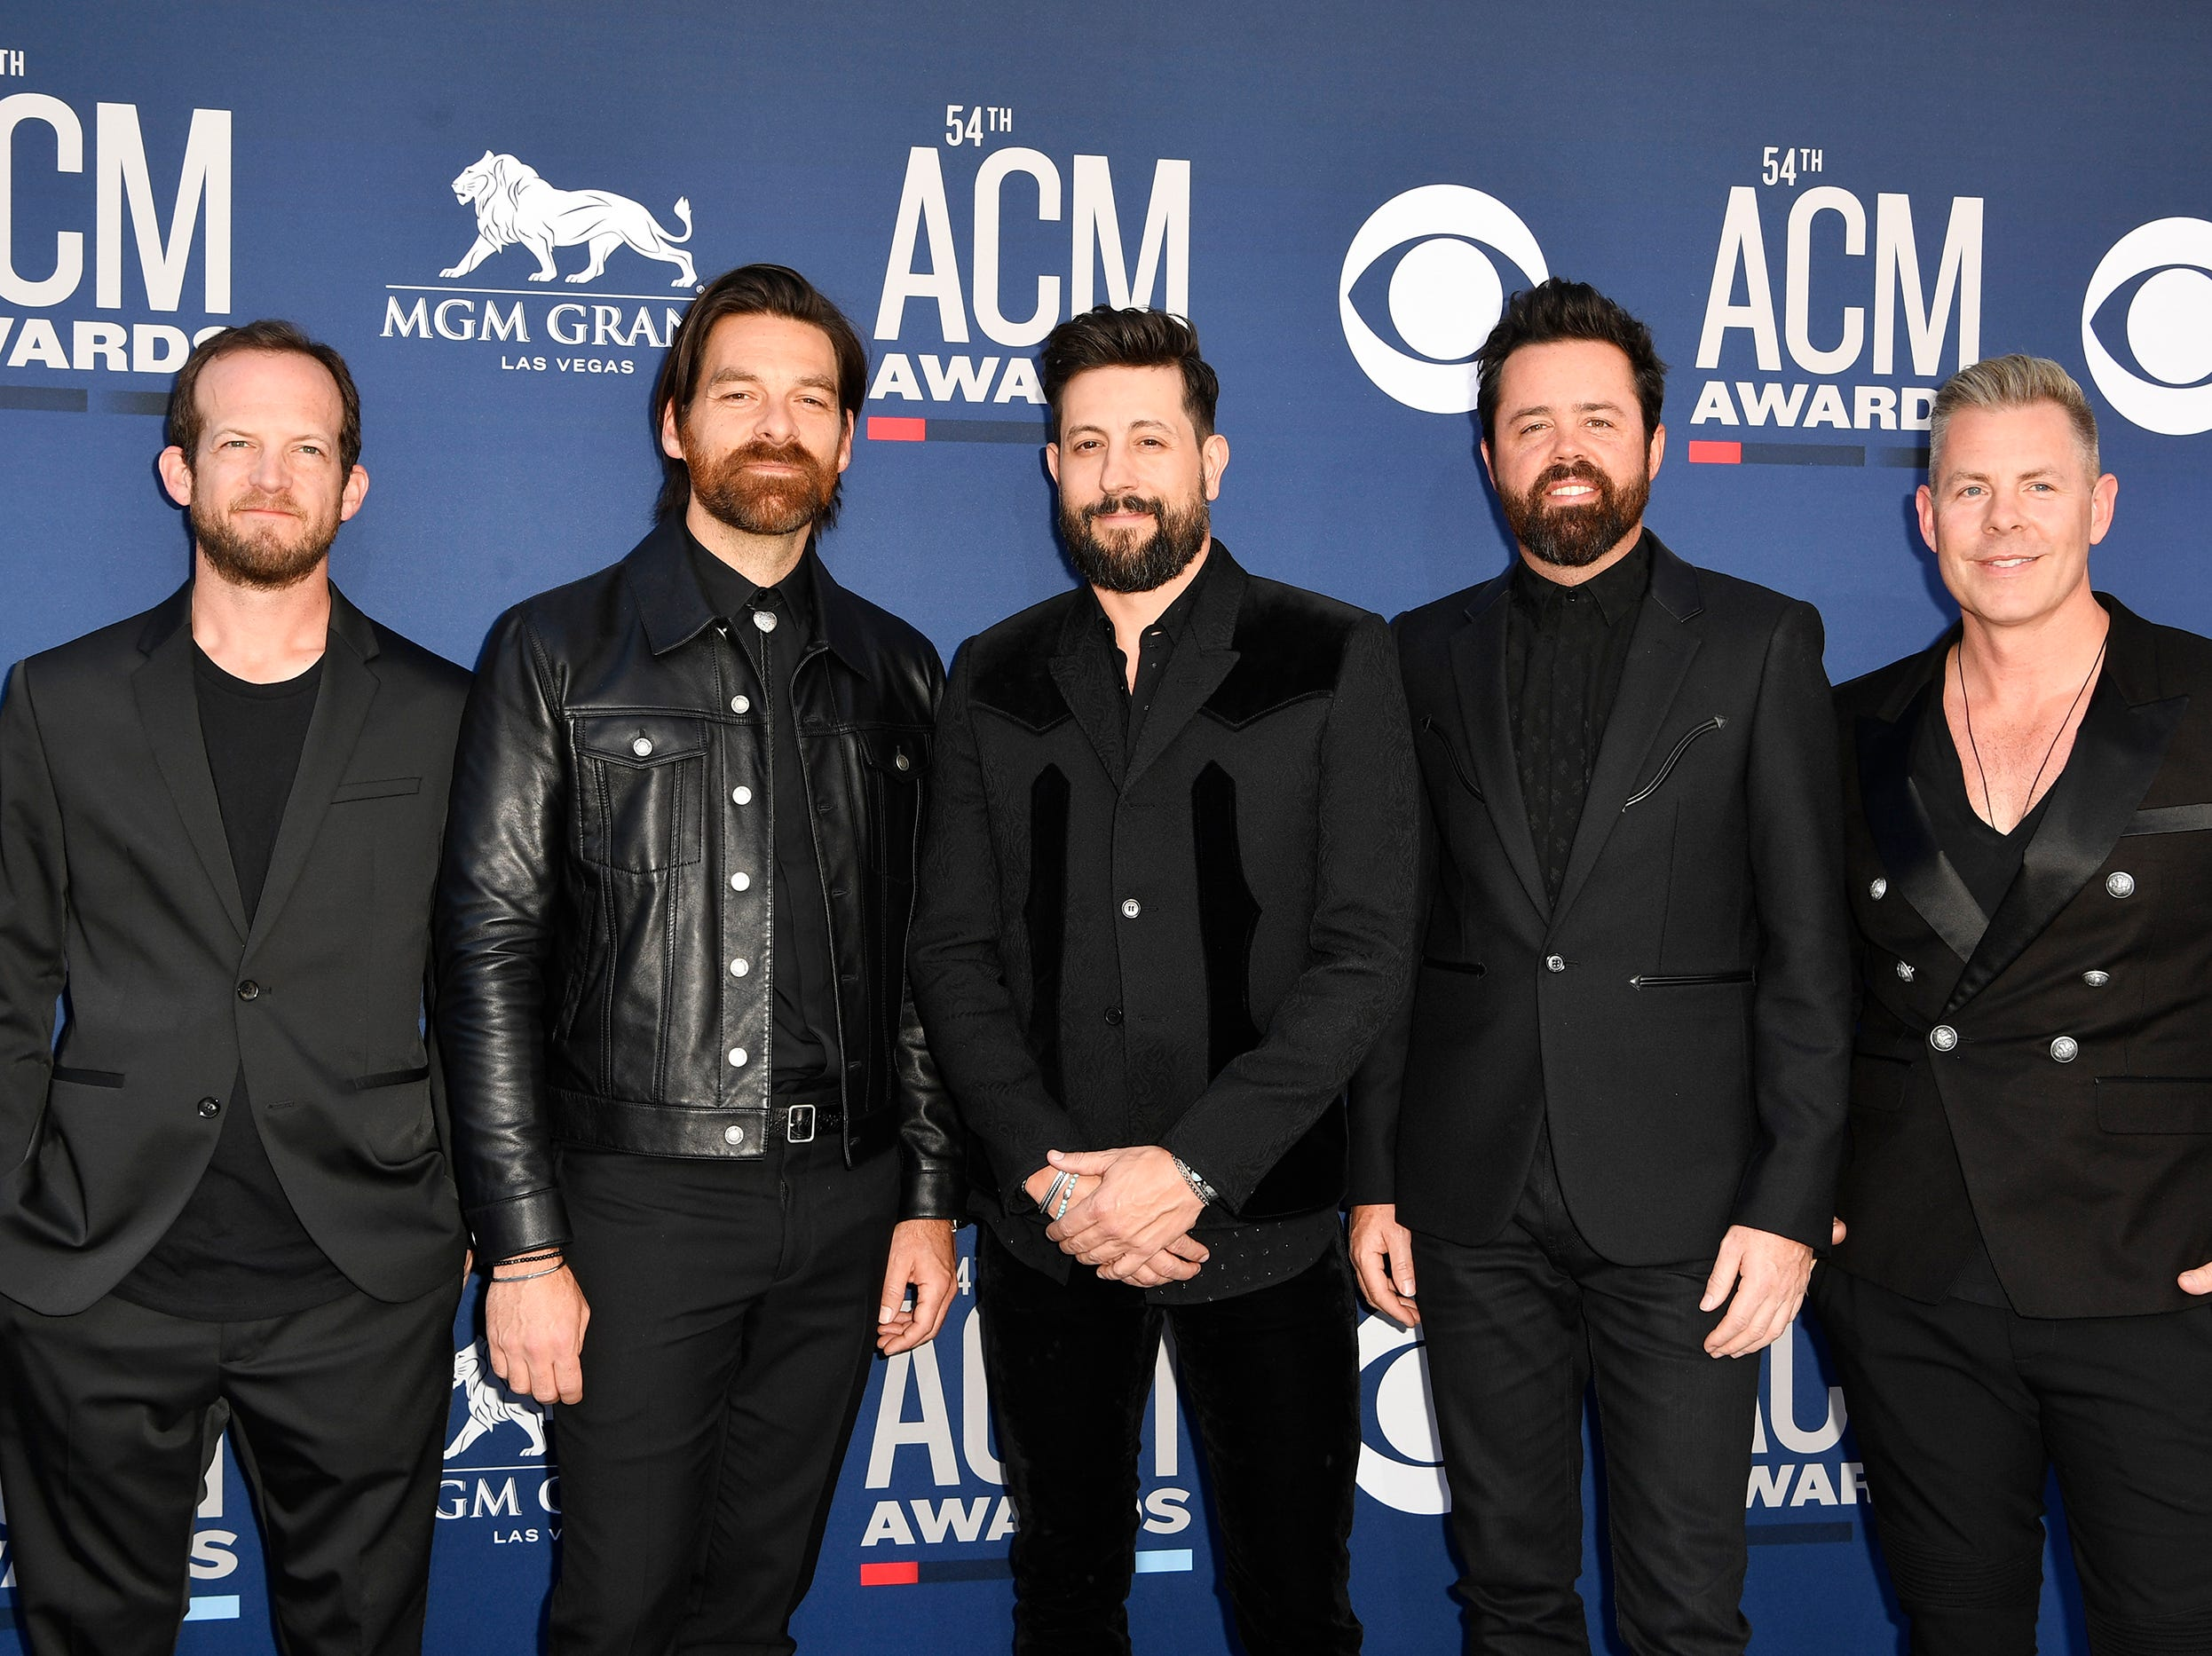 Old Dominion walks the red carpet at the 54TH Academy of Country Music Awards Sunday, April 7, 2019, in Las Vegas, Nev.